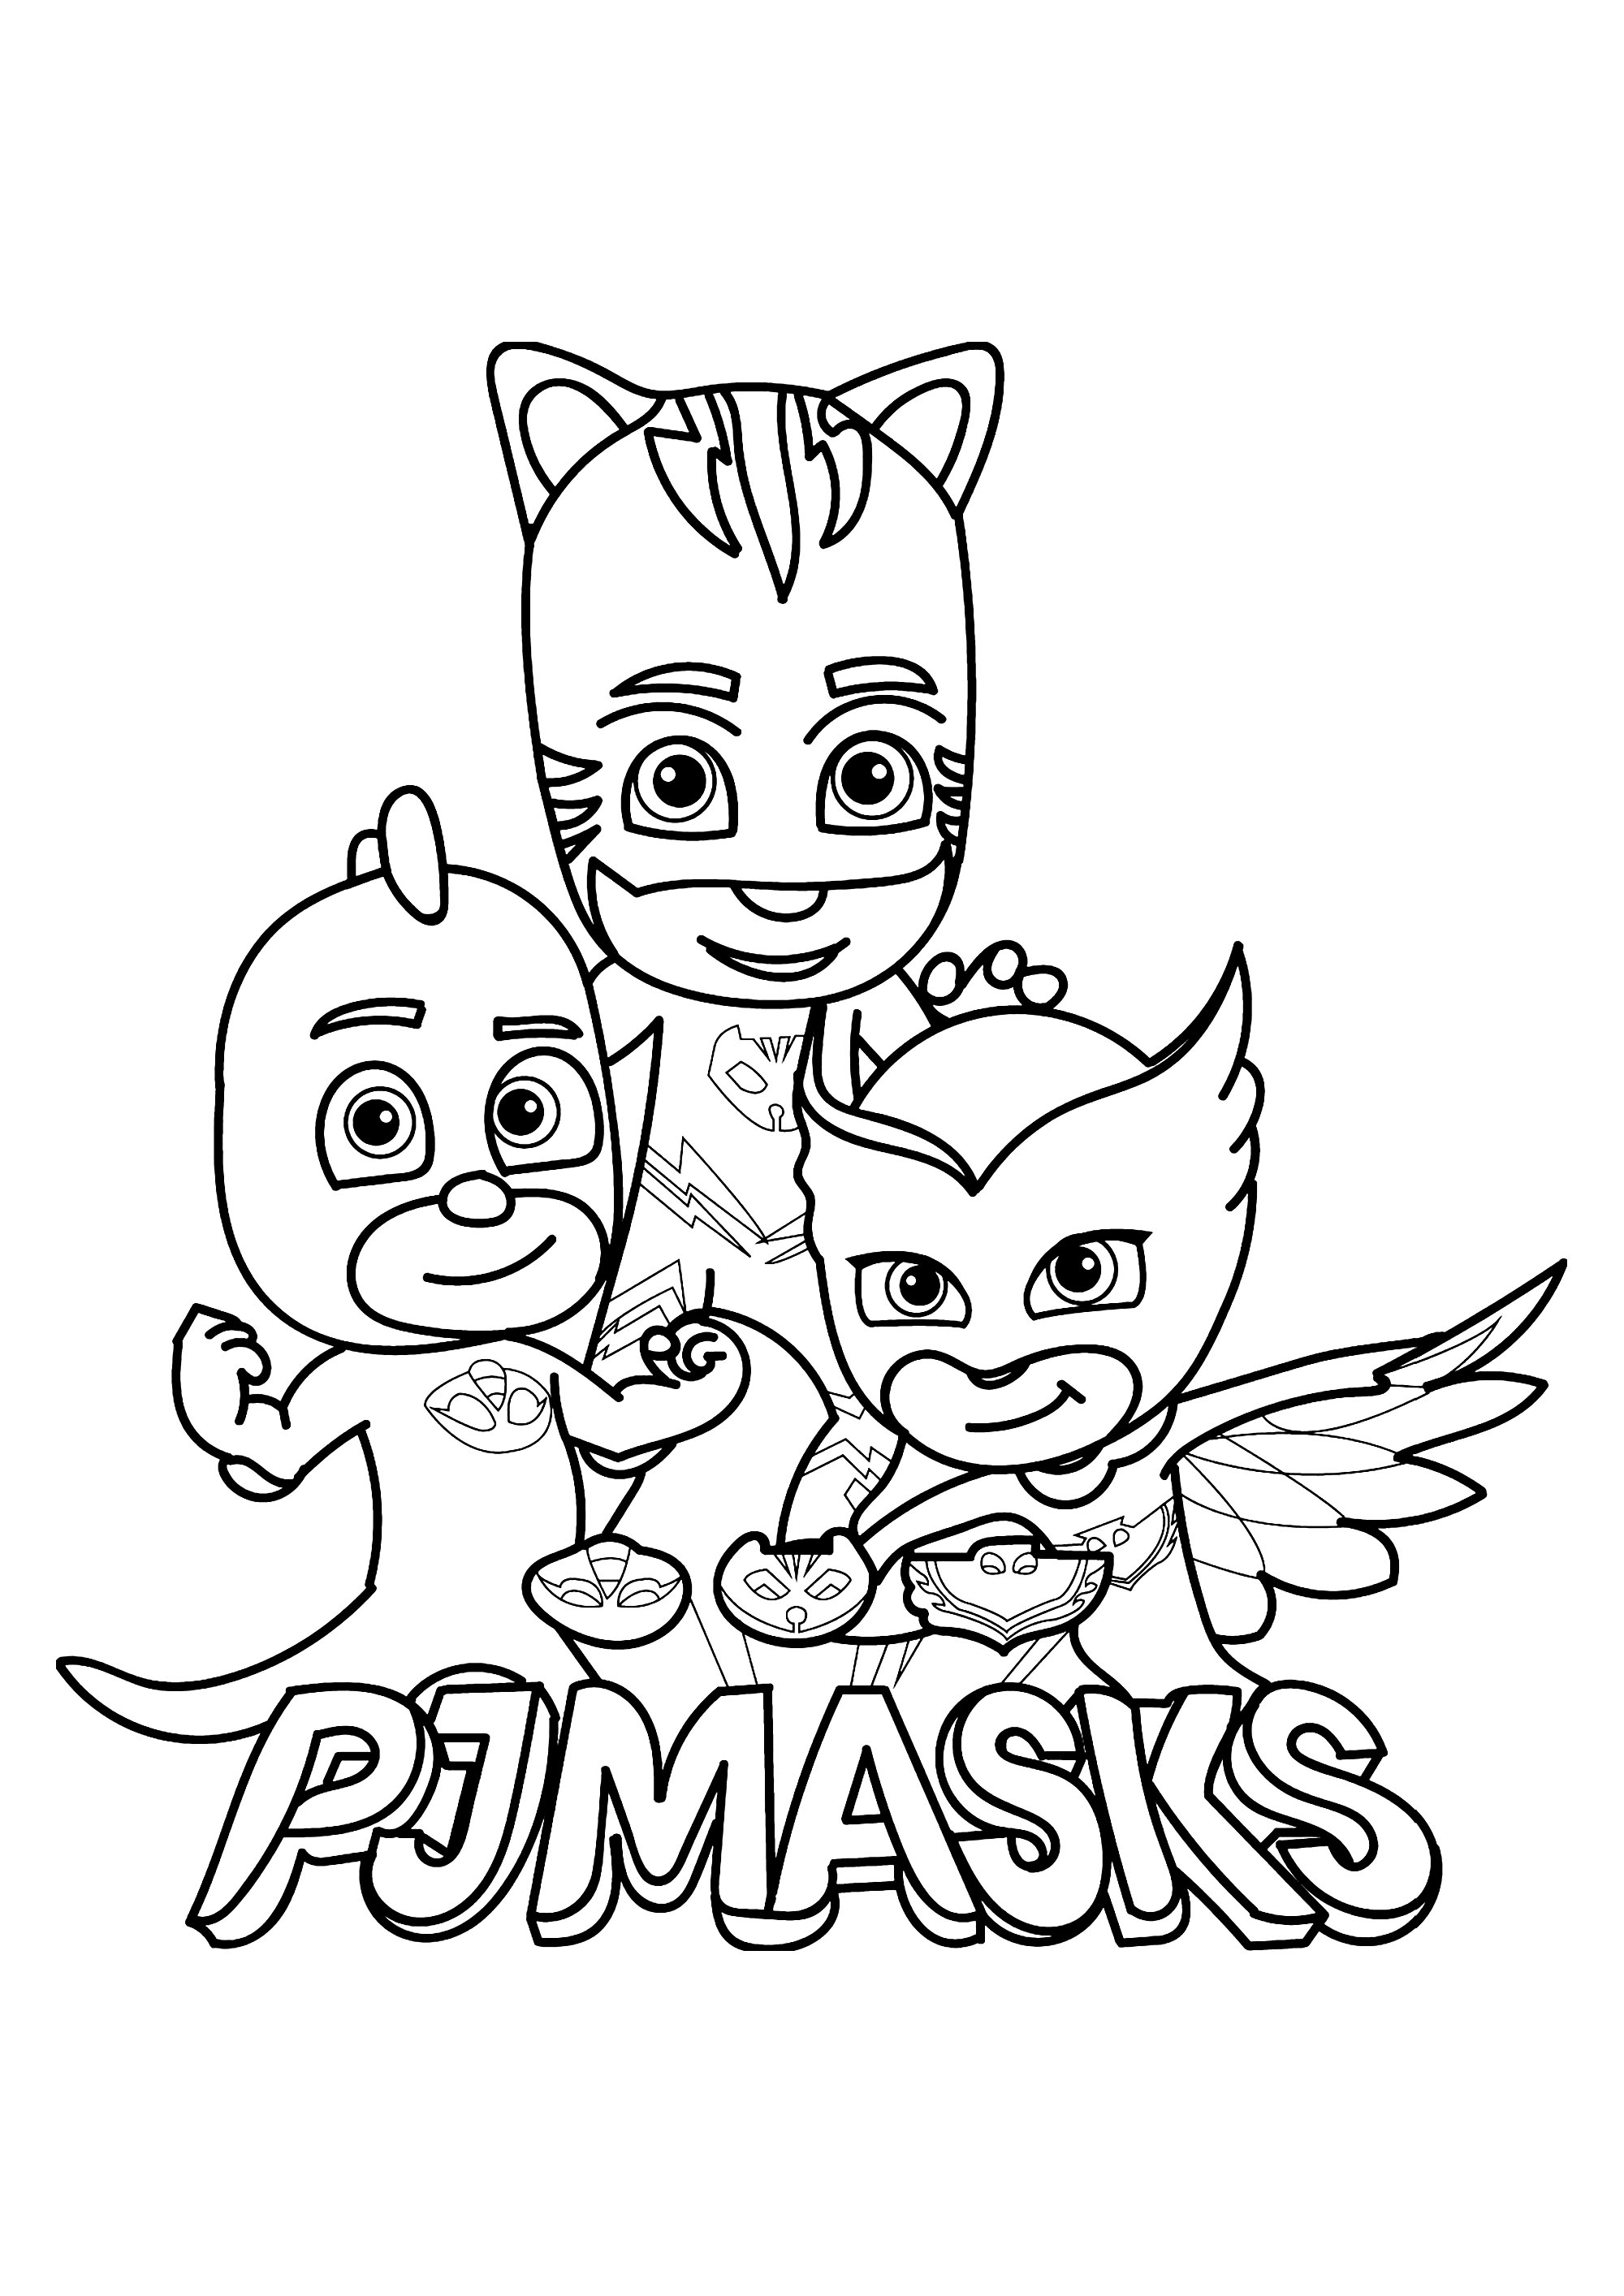 Pj masks for kids - PJ Masks Kids Coloring Pages